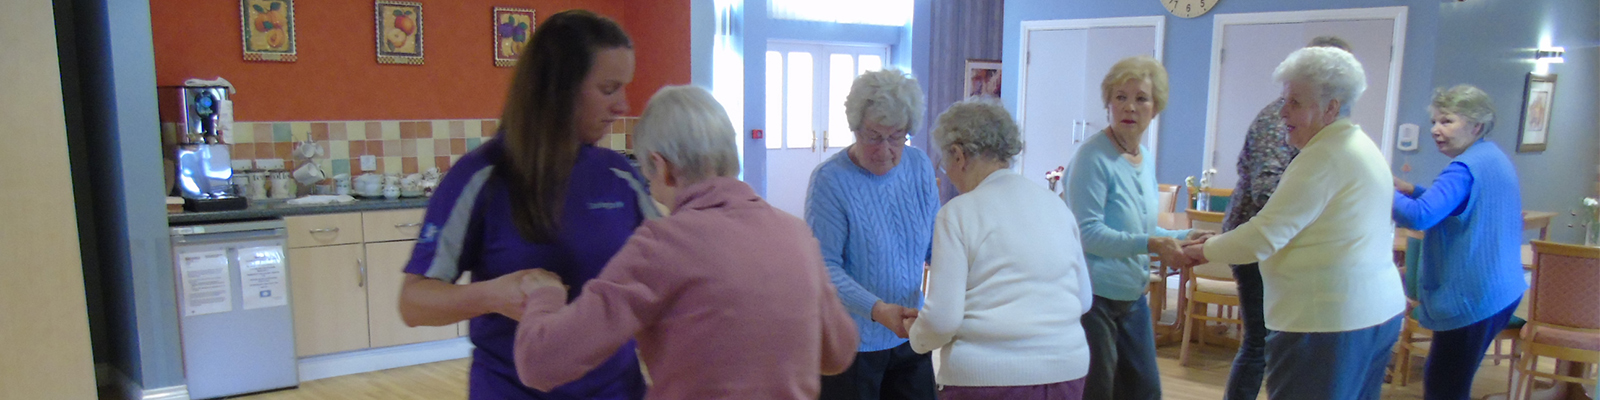 Residents dancing at Linden Court